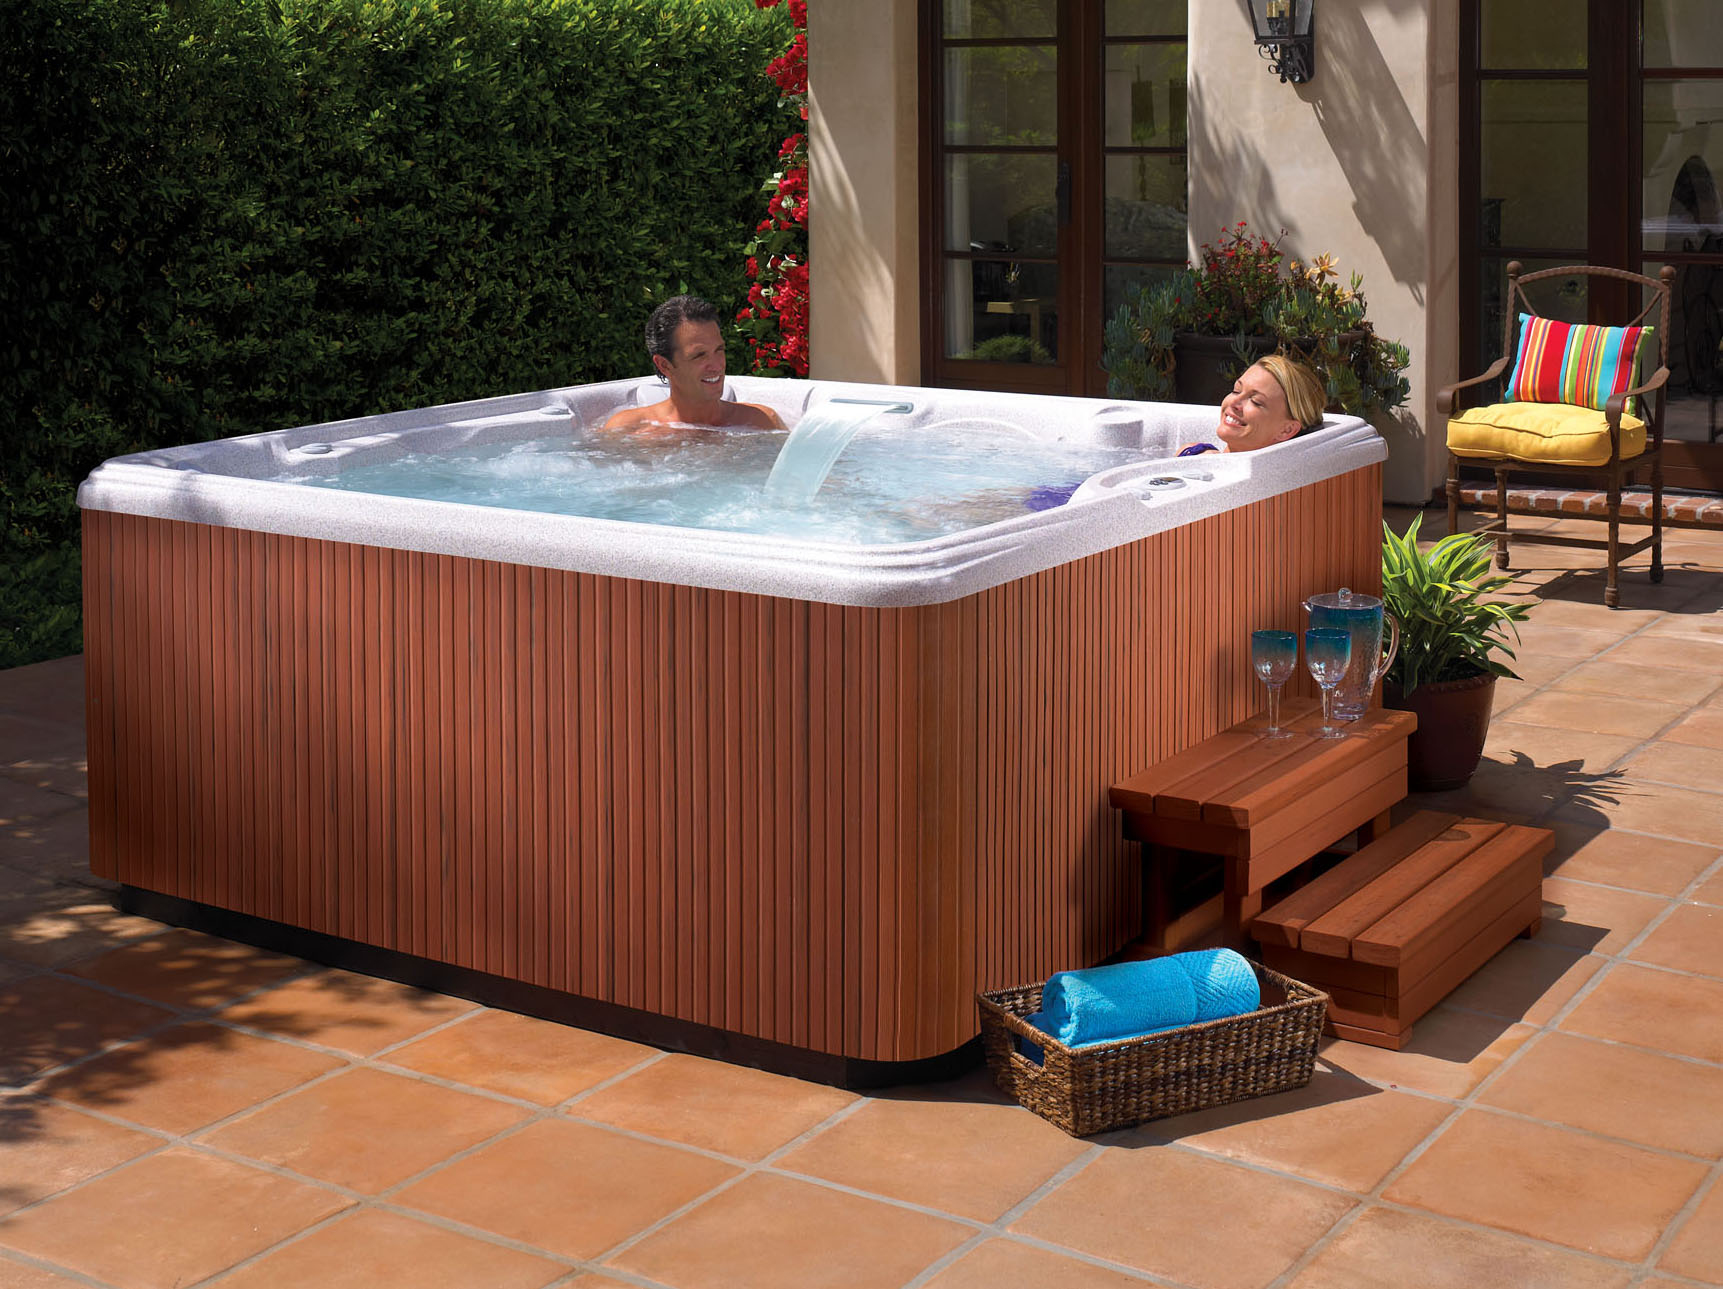 cleaning about spas country self hot blog with image setting the tubs in spring spa tub couple hotspring a truth